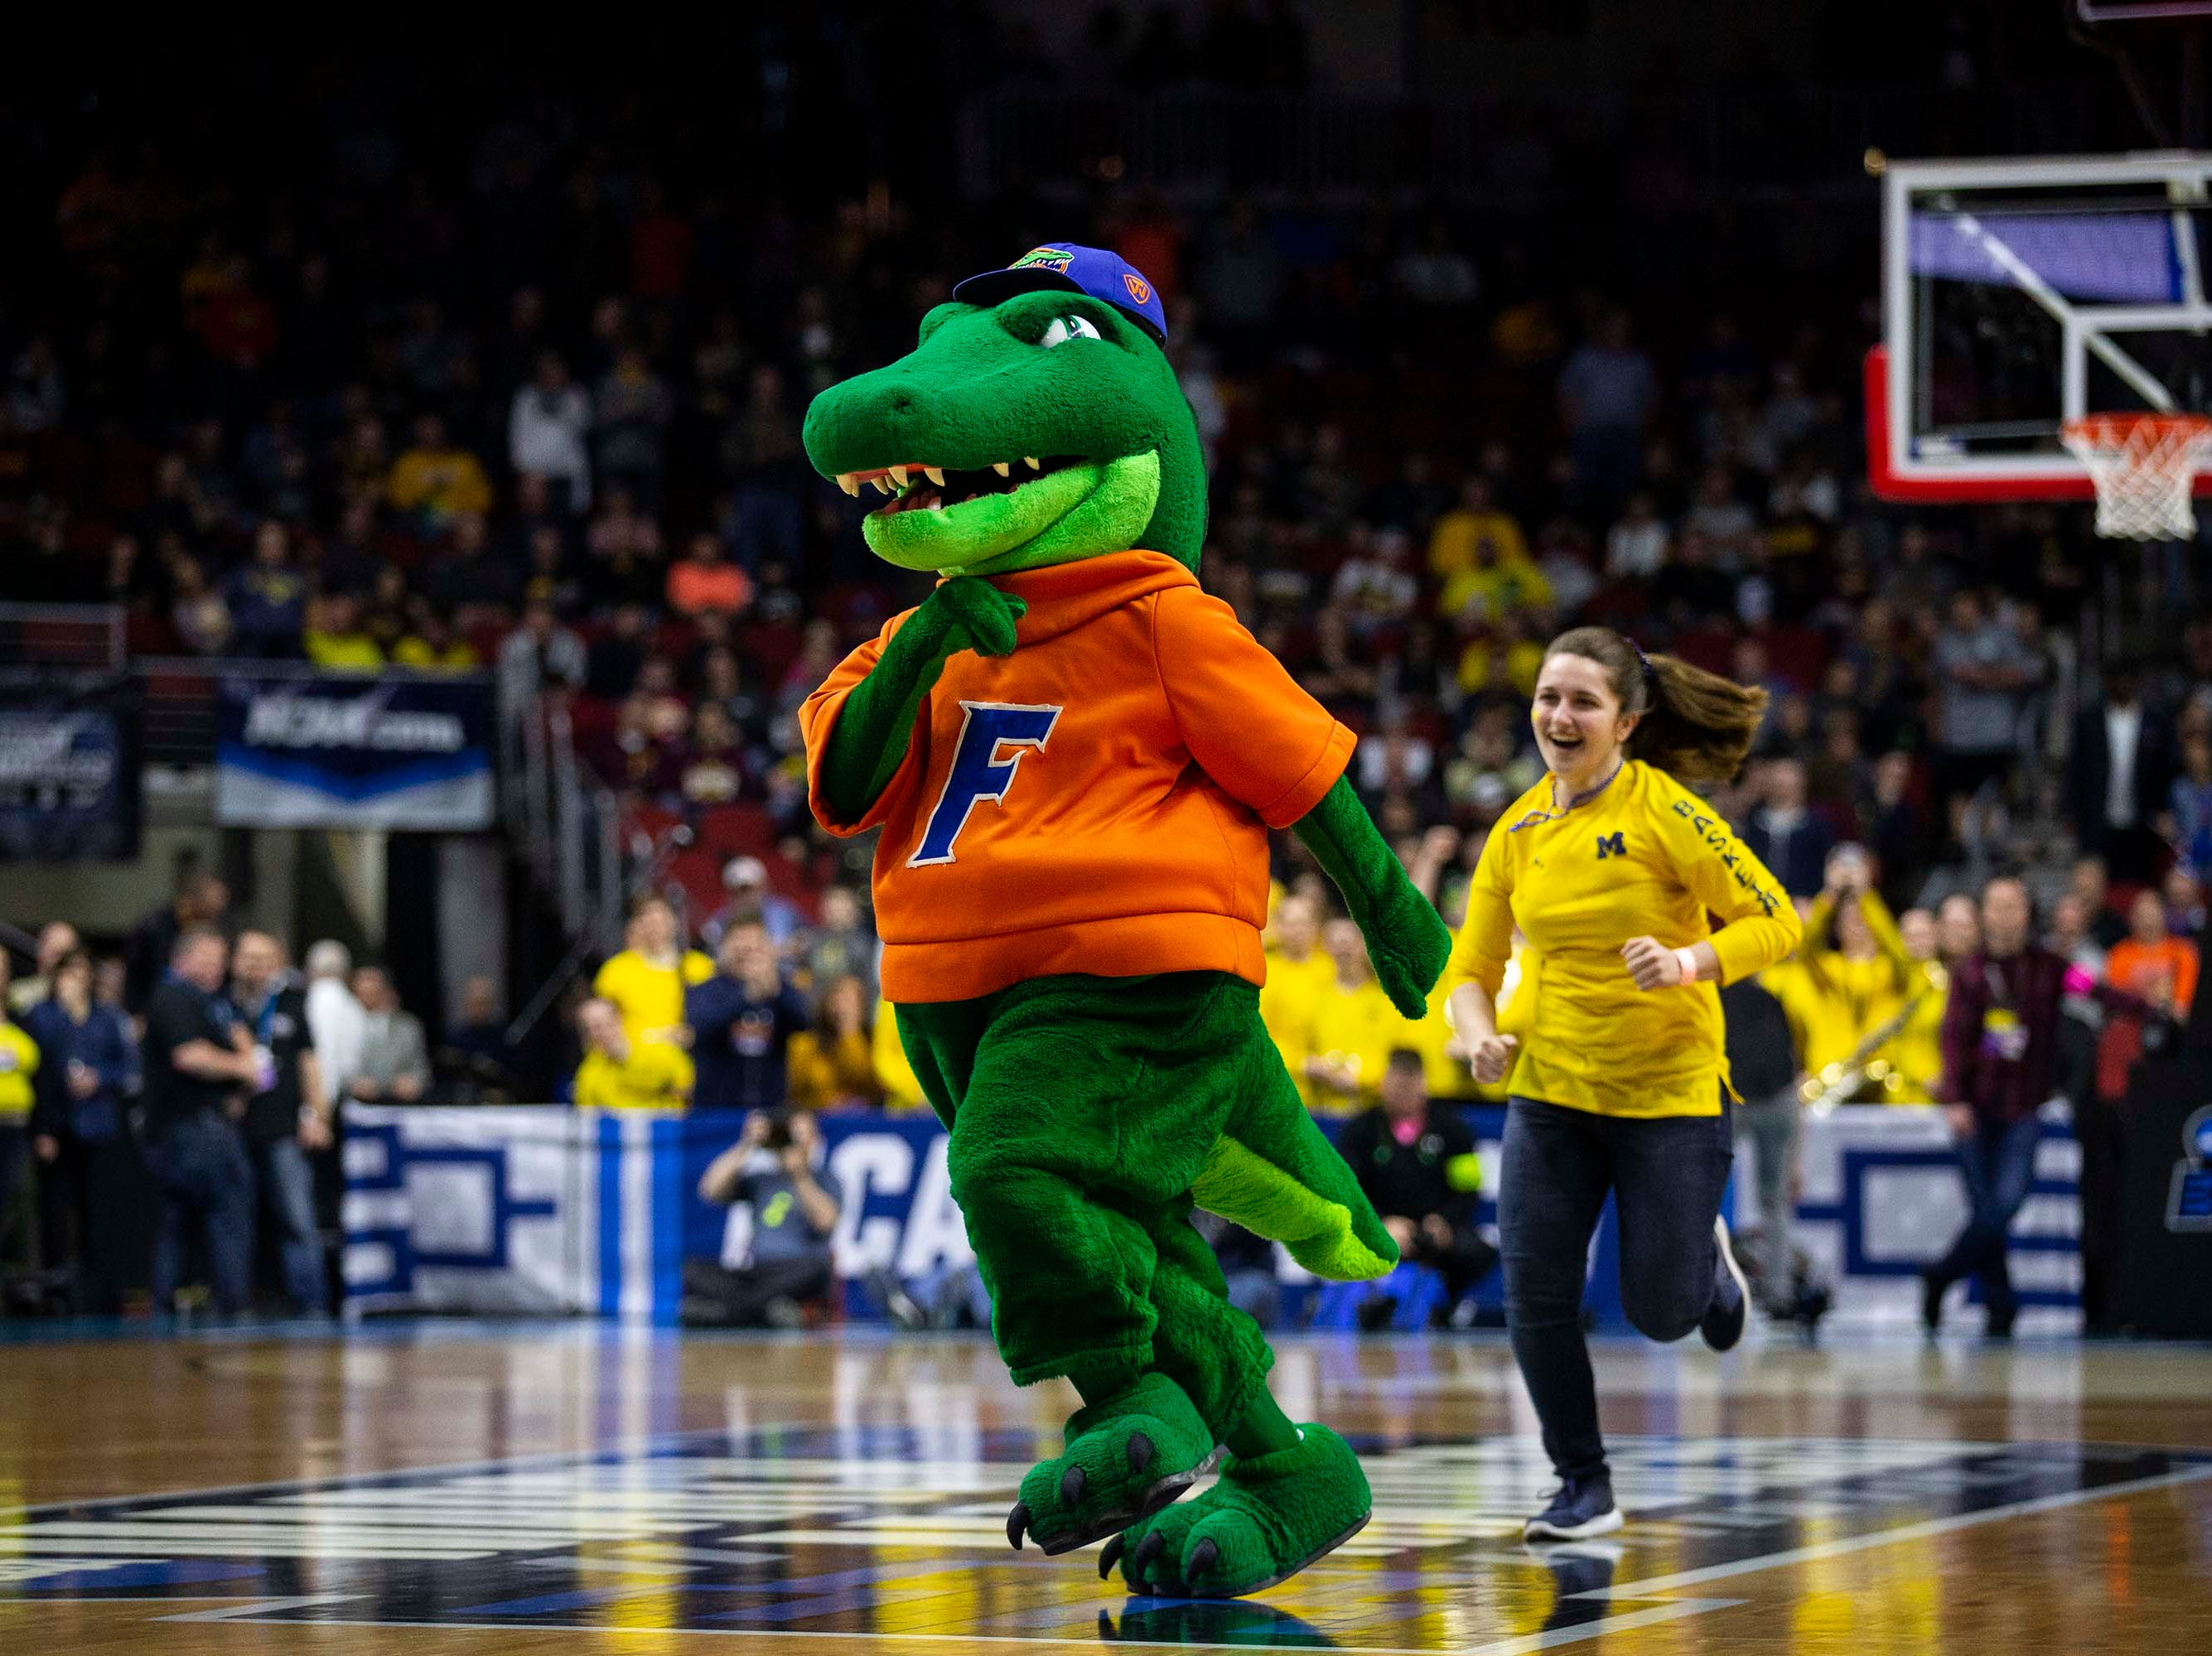 The Florida Gator's mascot runs from a member of the Michigan pep band before the NCAA Tournament second-round match-up between Michigan and Florida on Saturday, March 23, 2019, in Wells Fargo Arena in Des Moines, Iowa.